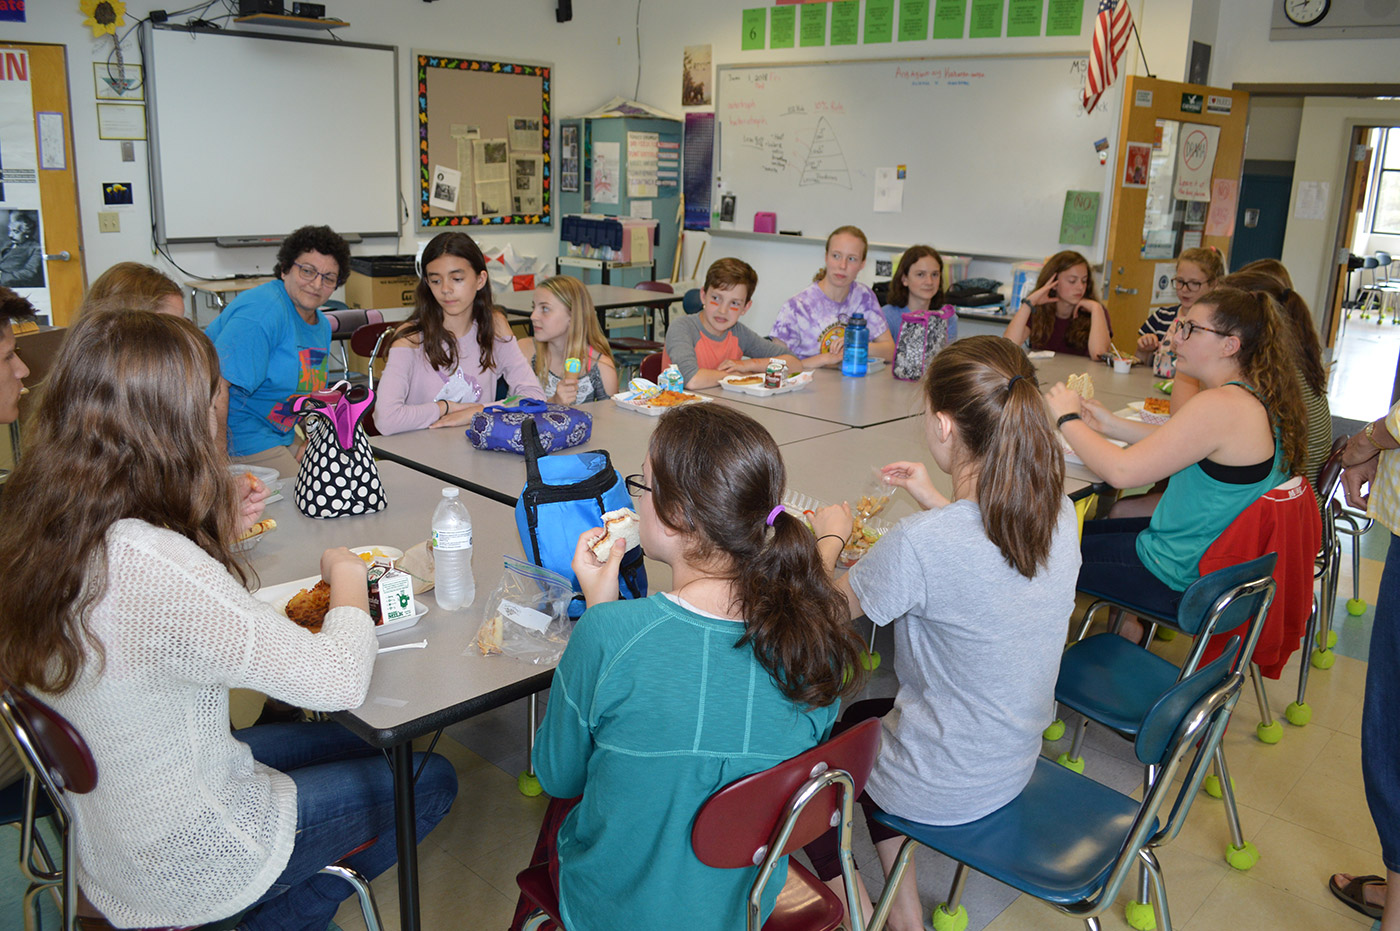 Environmental Club students at Hall-Dale Middle School discuss how their composting program is going.